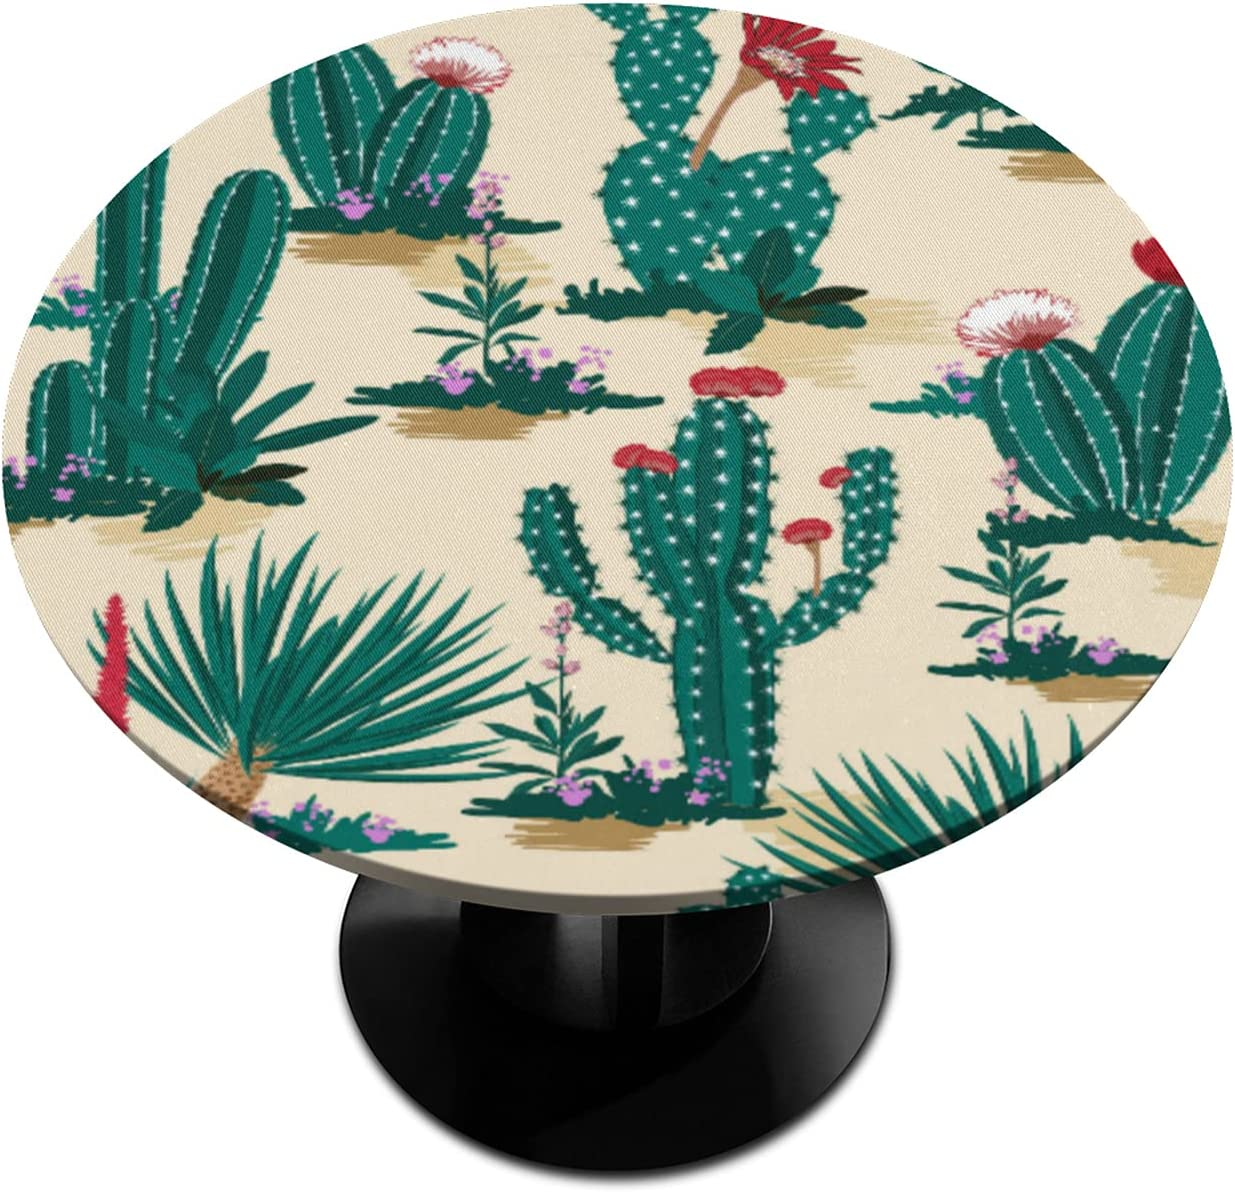 Round Fitted Tablecloth Max 51% OFF with Elastic OFFicial mail order Cactus Tropic Succlent Edge